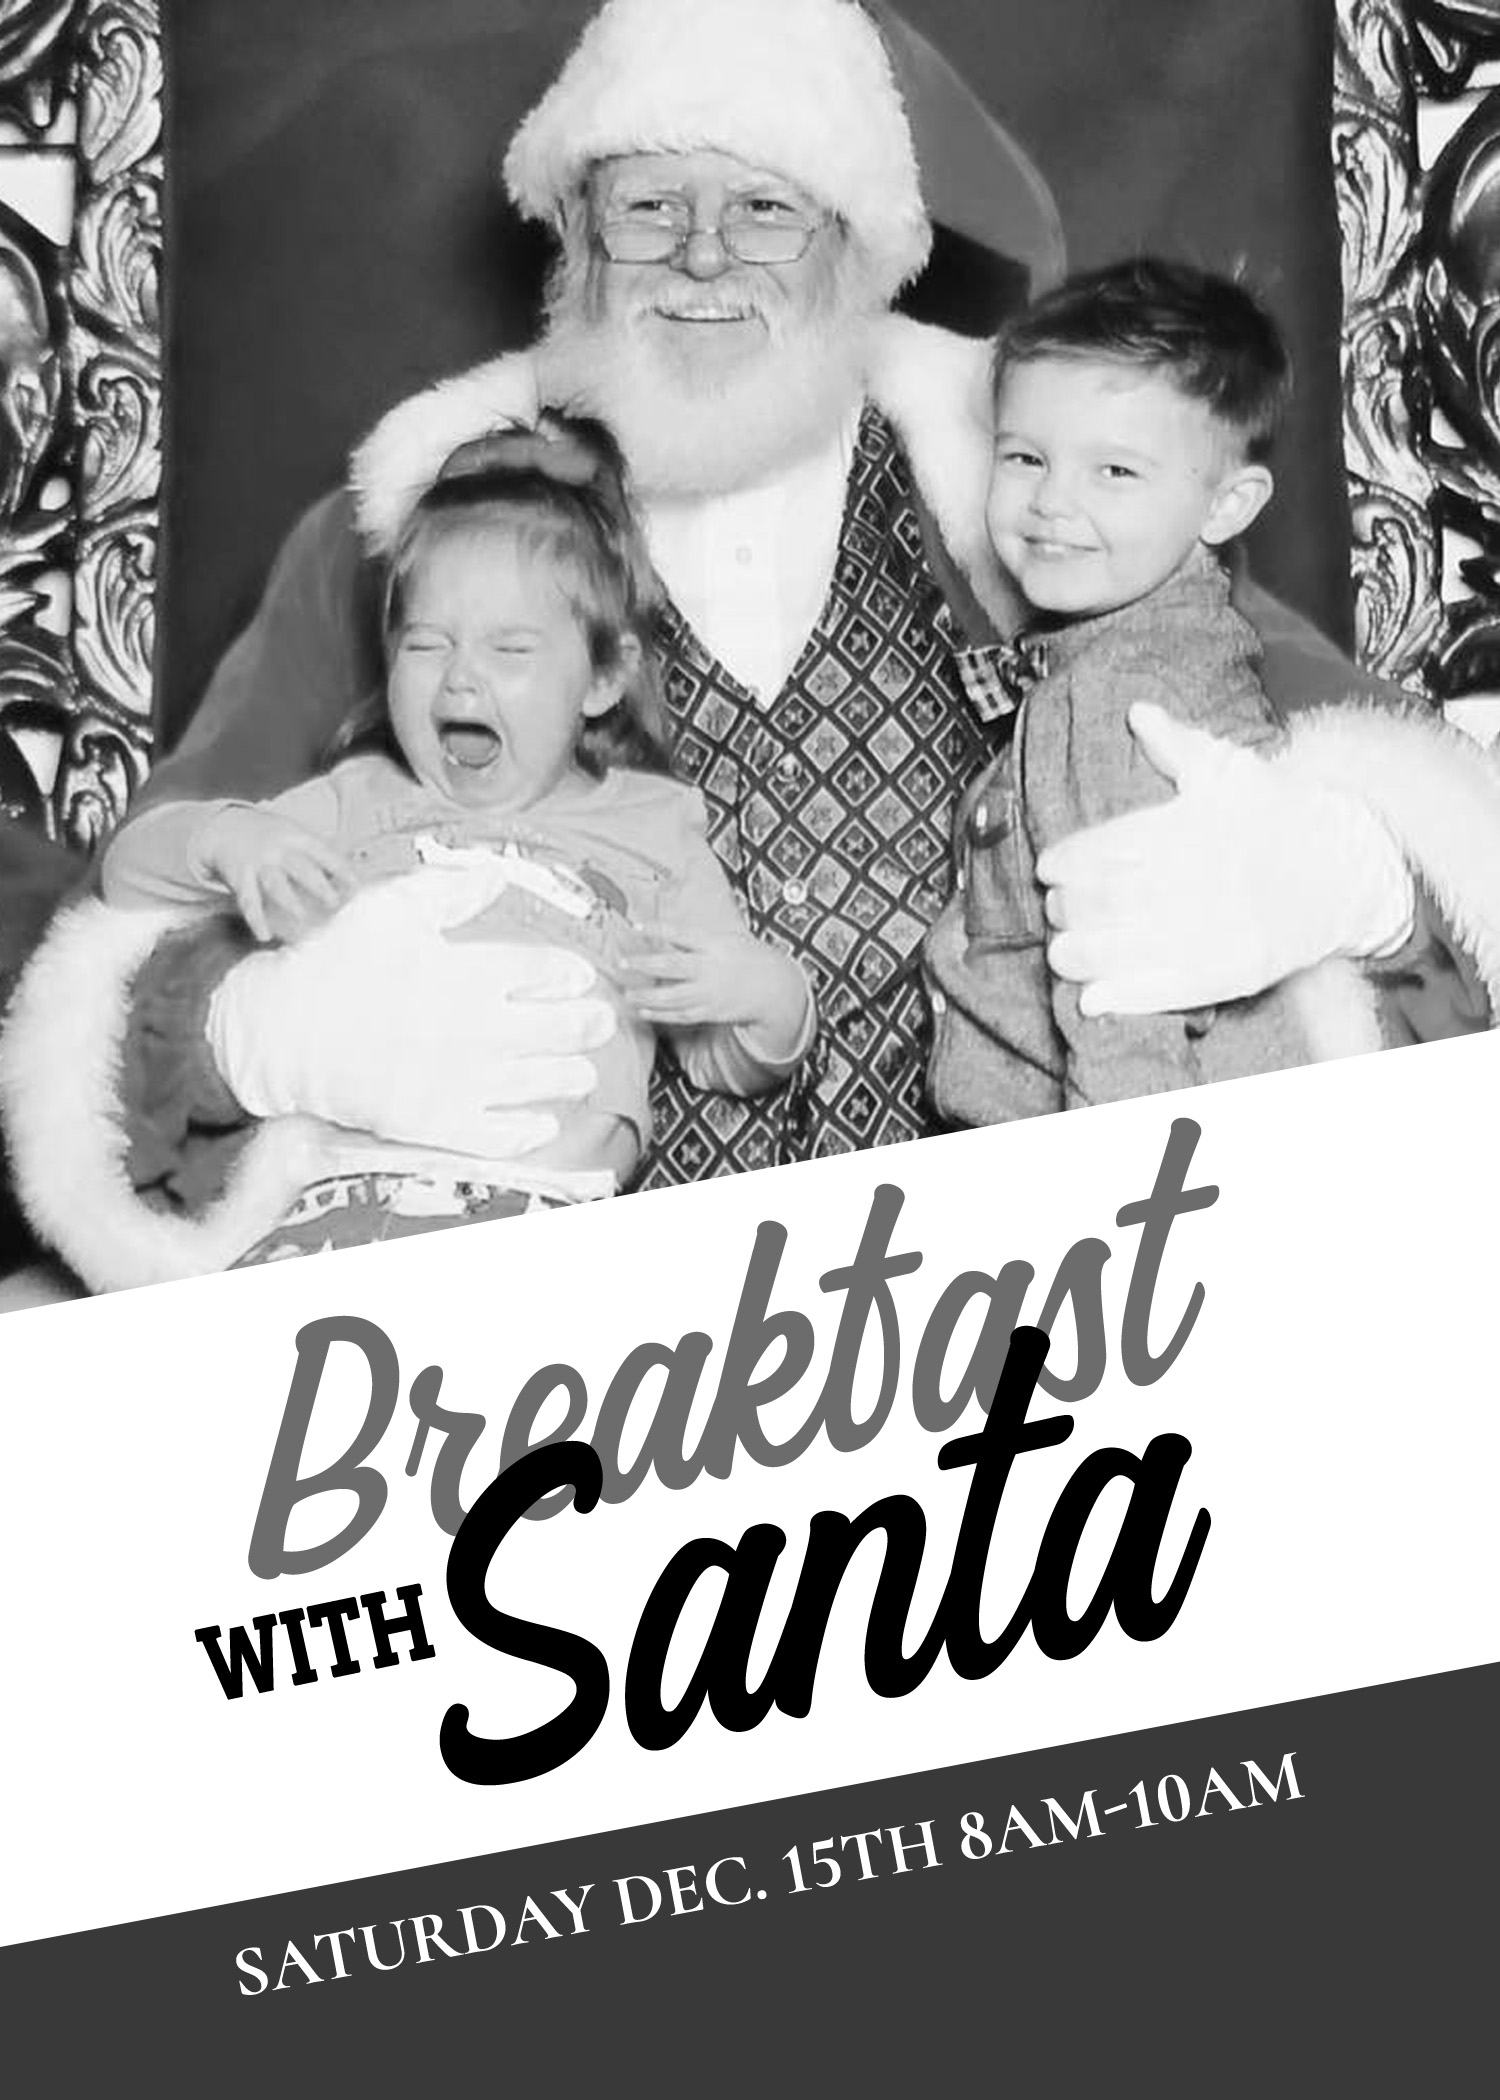 Breakfast with Santa at Don's Diner & Cocktails